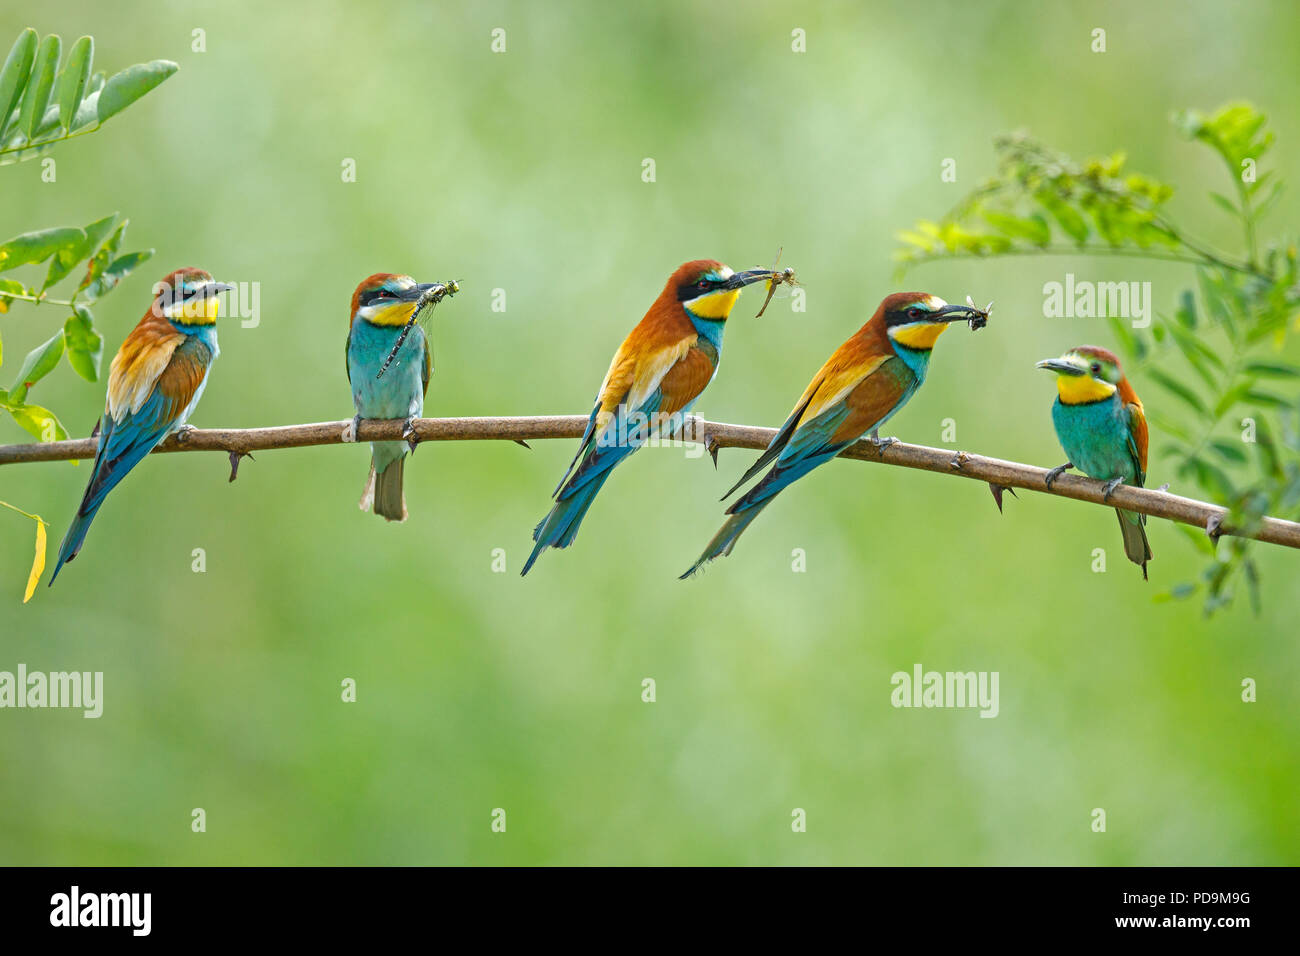 Five Bee-eaters (Merops apiaster) with prey in their beaks, sitting during the breeding season on branch, Rhineland-Palatinate - Stock Image